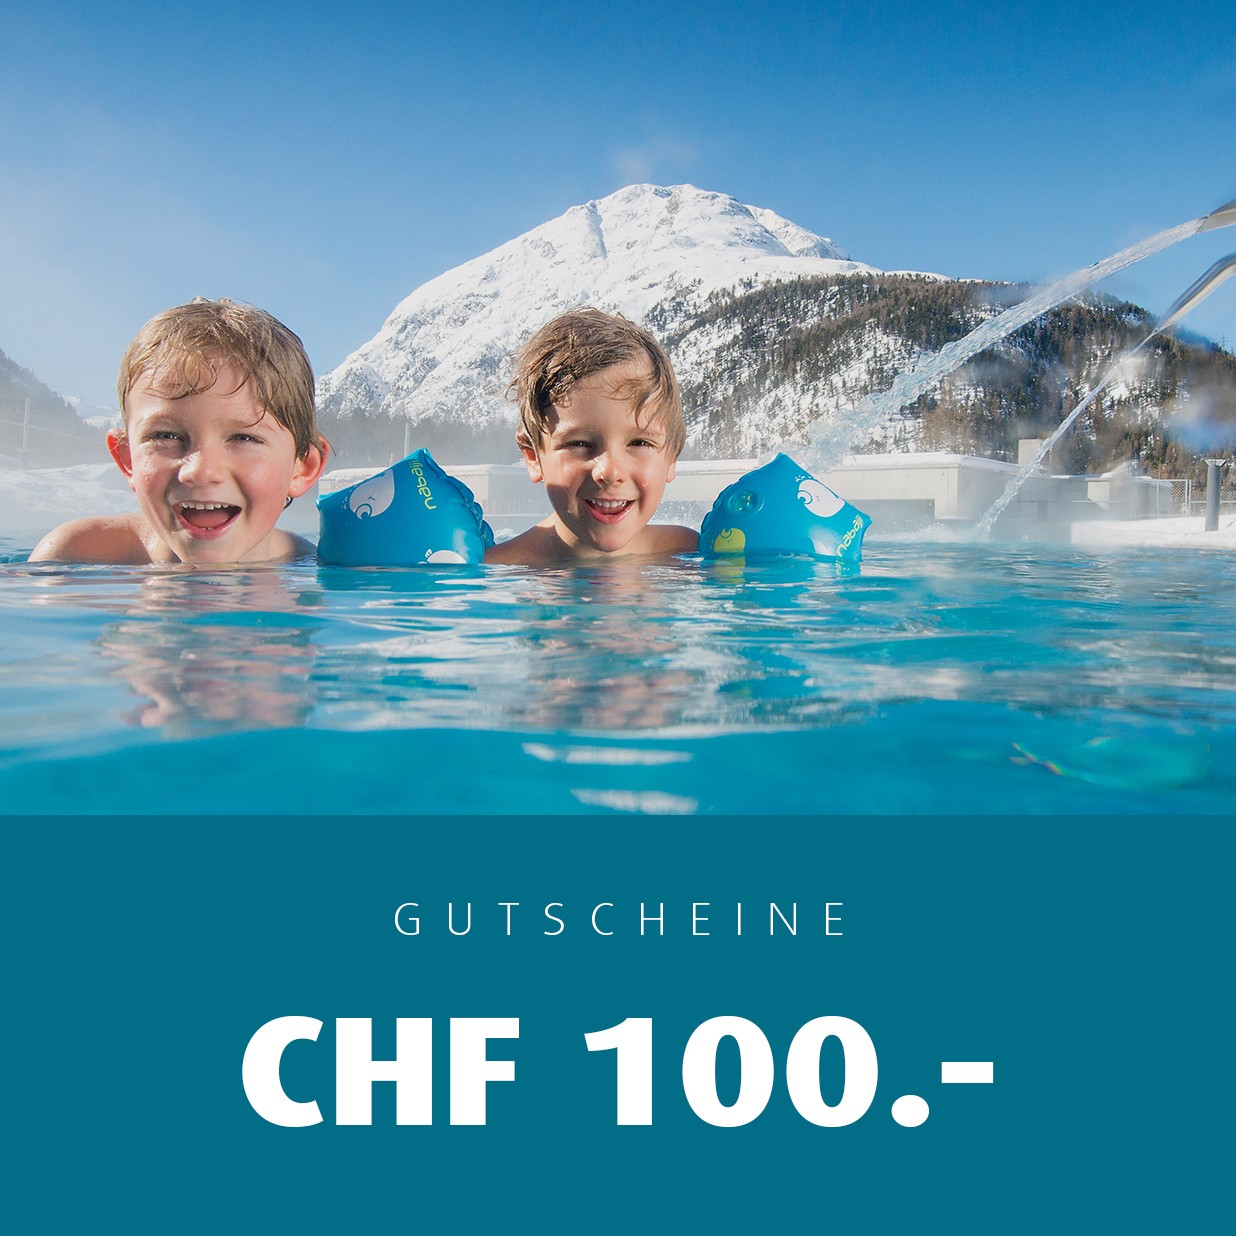 Gift certificates Bellavita for CHF 100.00